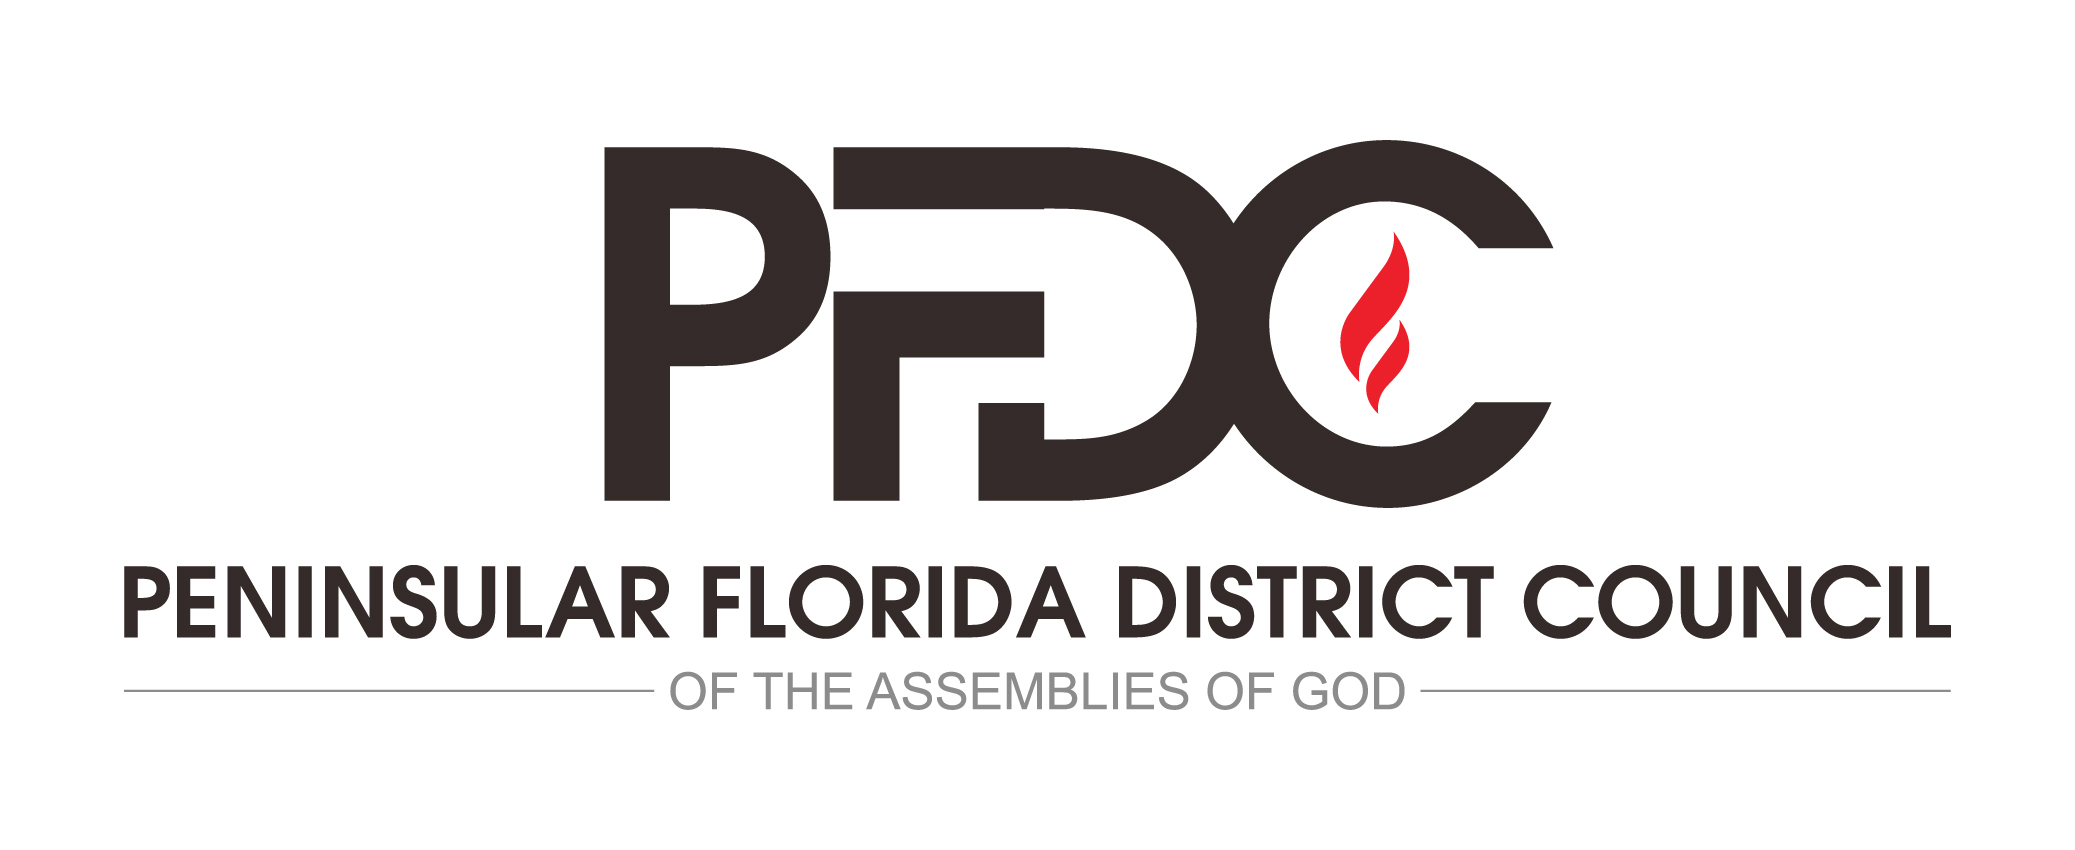 Peninsular Florida District Council Logo